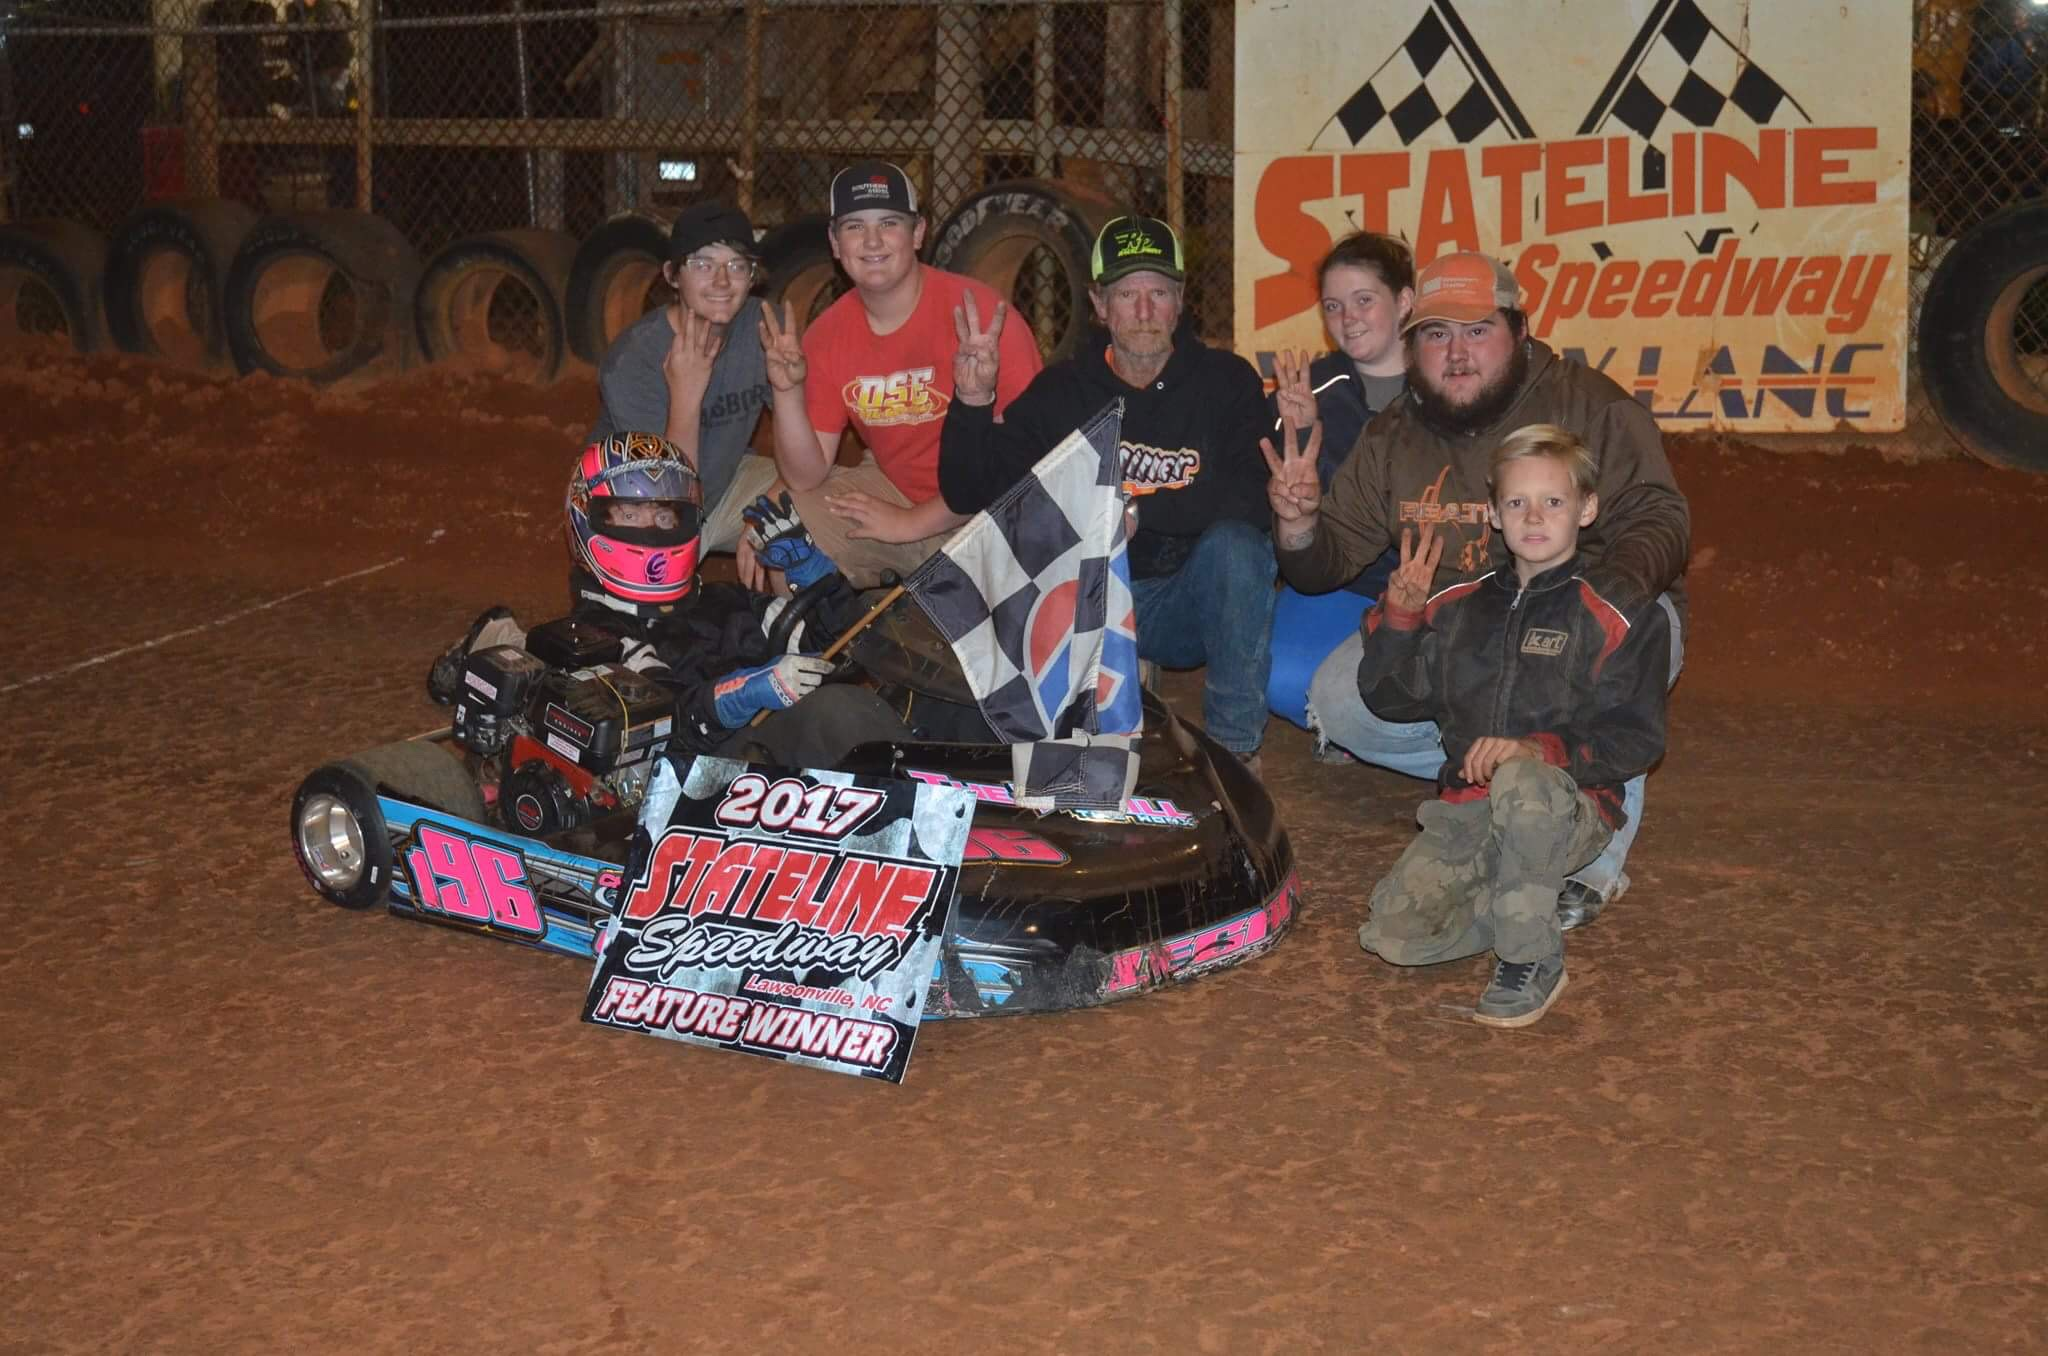 Caleb Clinard win at Stateline Speedway